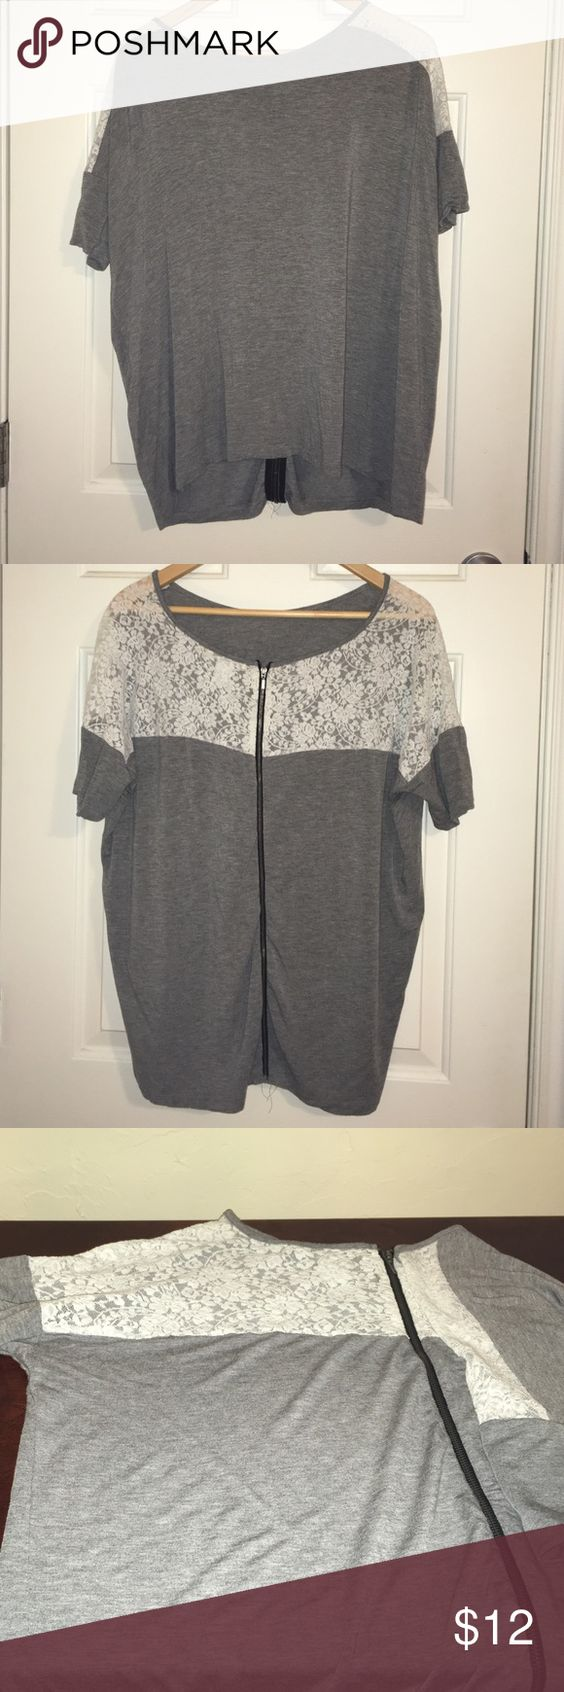 Lace T by Design History Design History brand top purchased at Nordstrom. Super soft gray t-style top with white lace shoulders and upper back. Black zipper up the back. As always, bundle 2 or more items for 10% off! Design History Tops